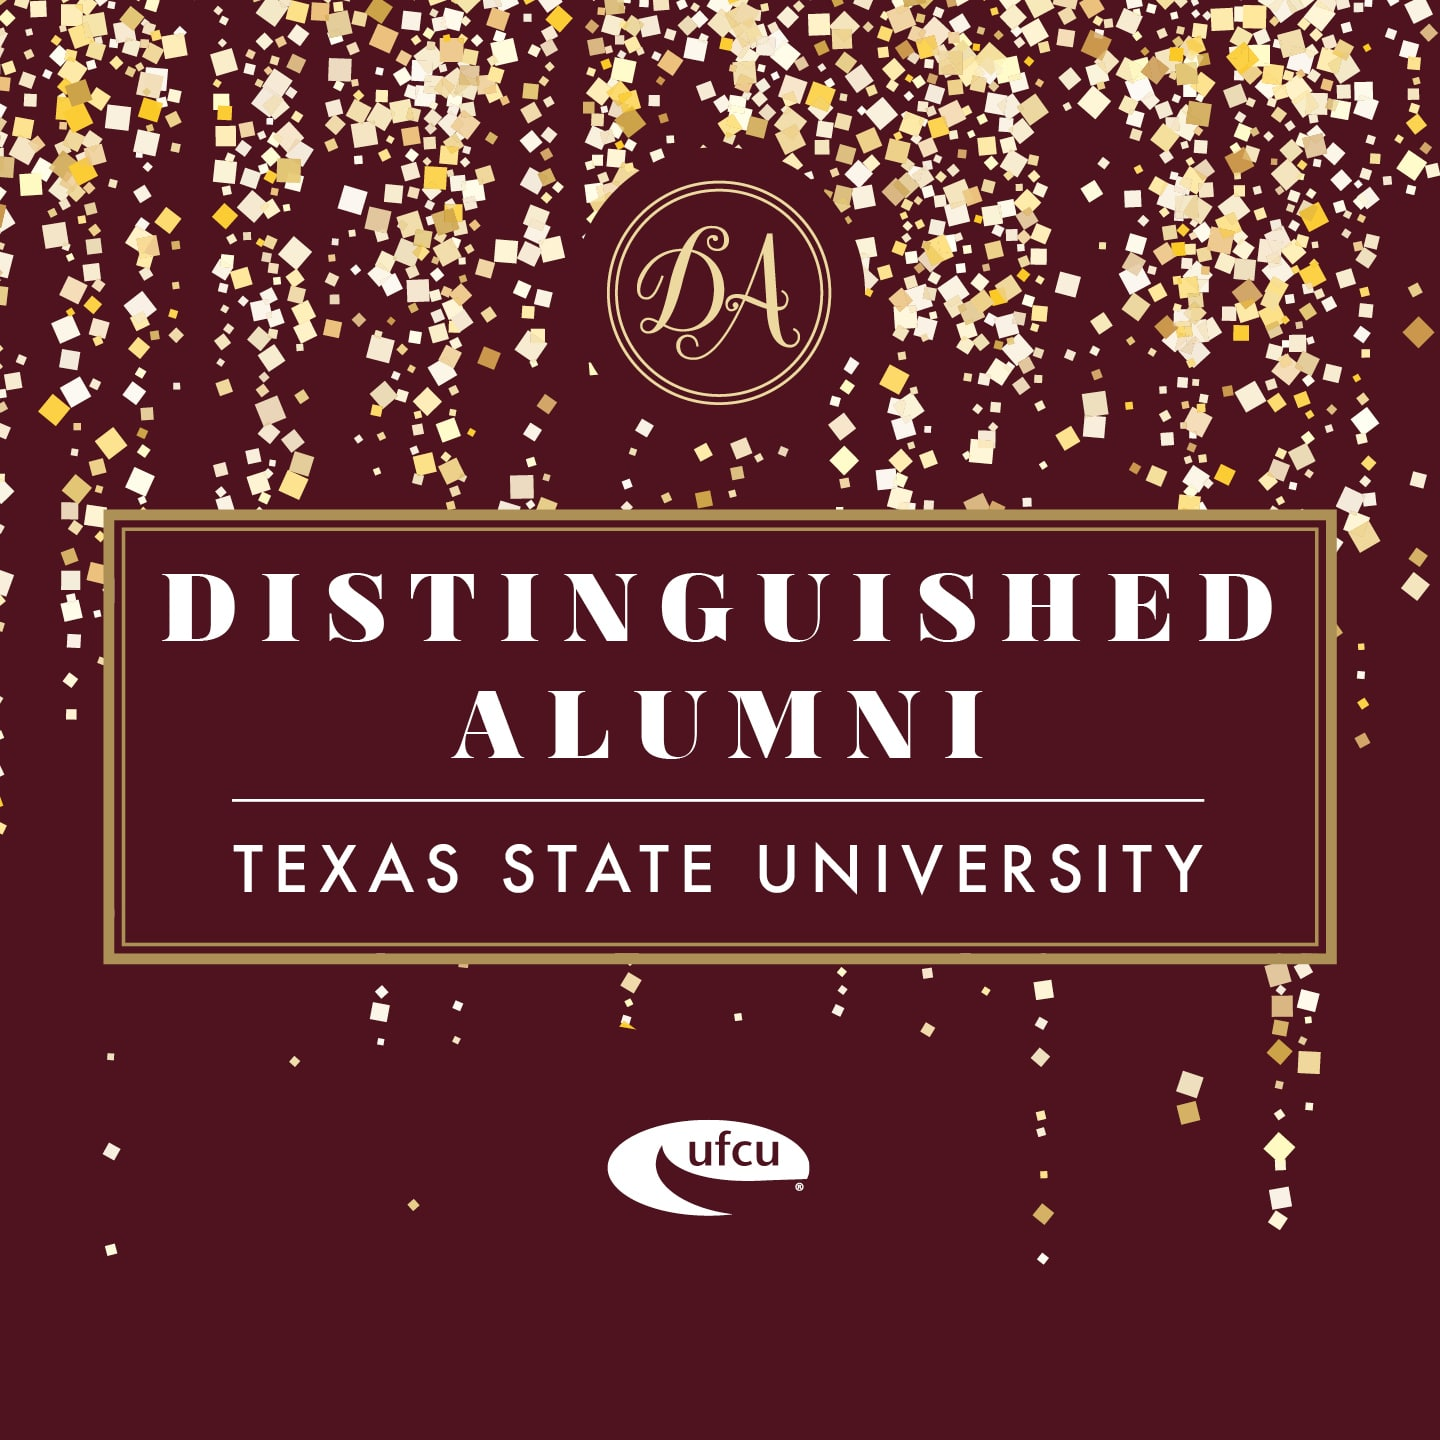 Distinguished Alumni Award